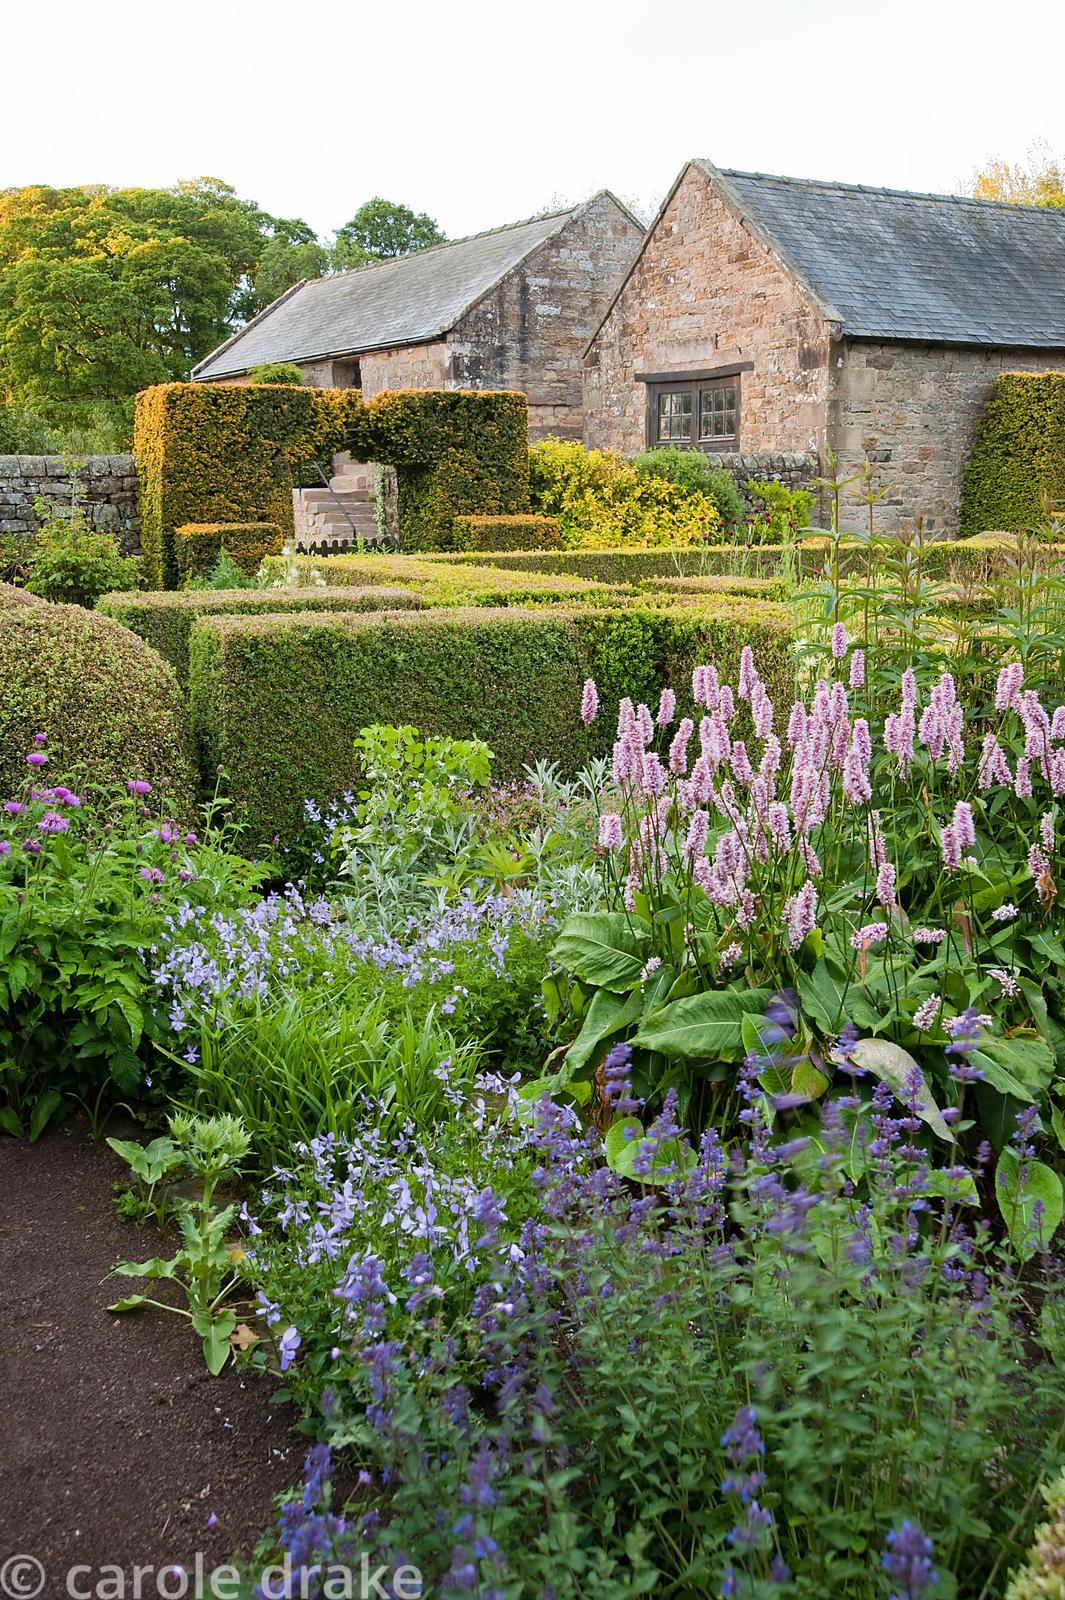 The Flower Garden features strong blocks of box and yew that frame cottage garden plants and flowers includig persicaria, Vio...